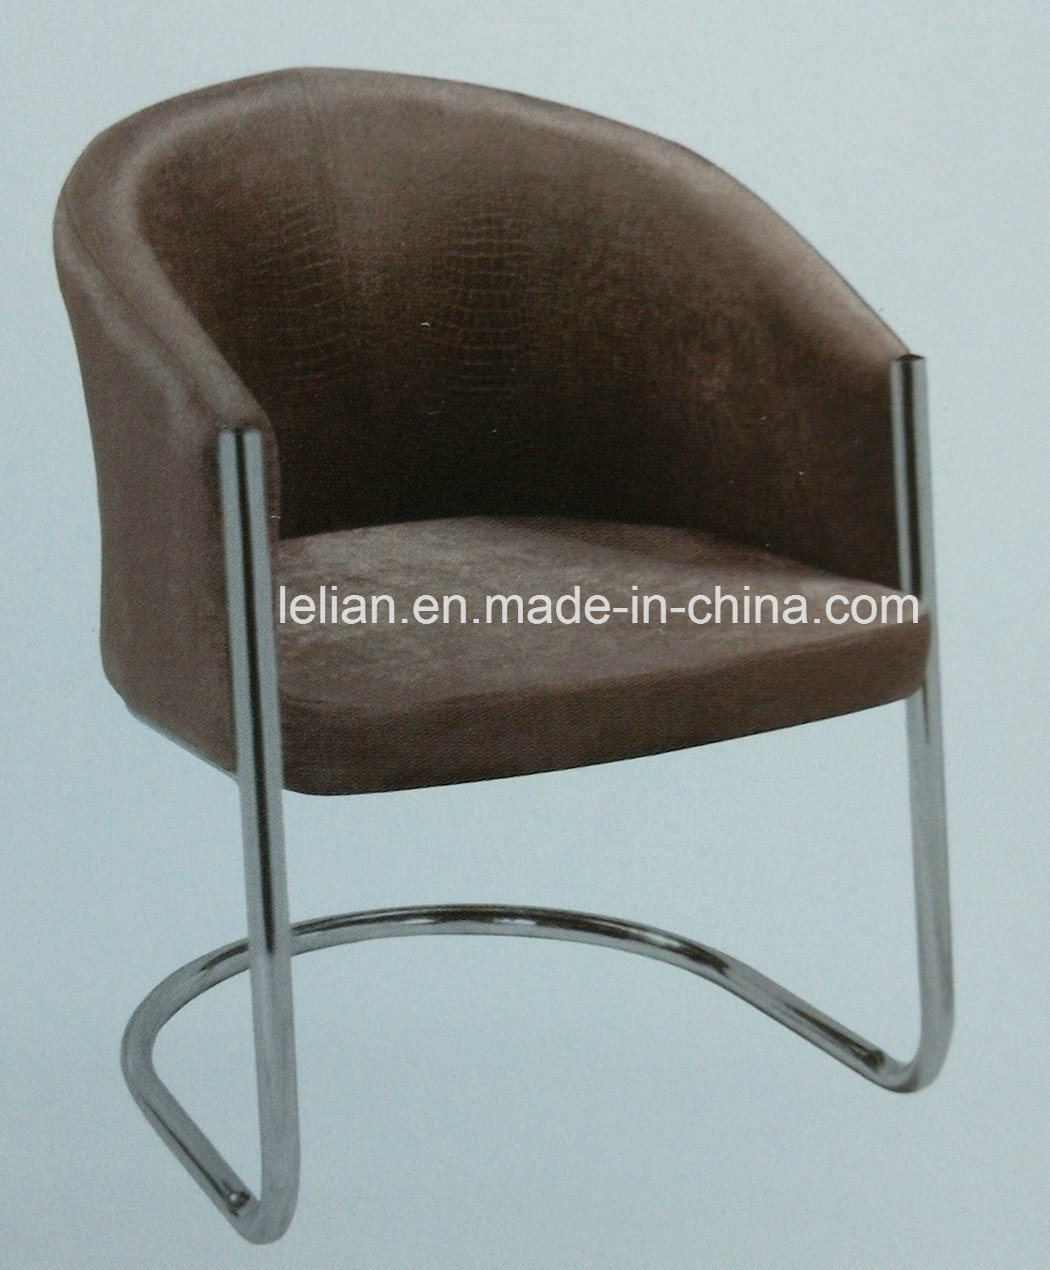 China Leisure Bedroom Single Sitting Sofa Chair Comfortable Tub ...